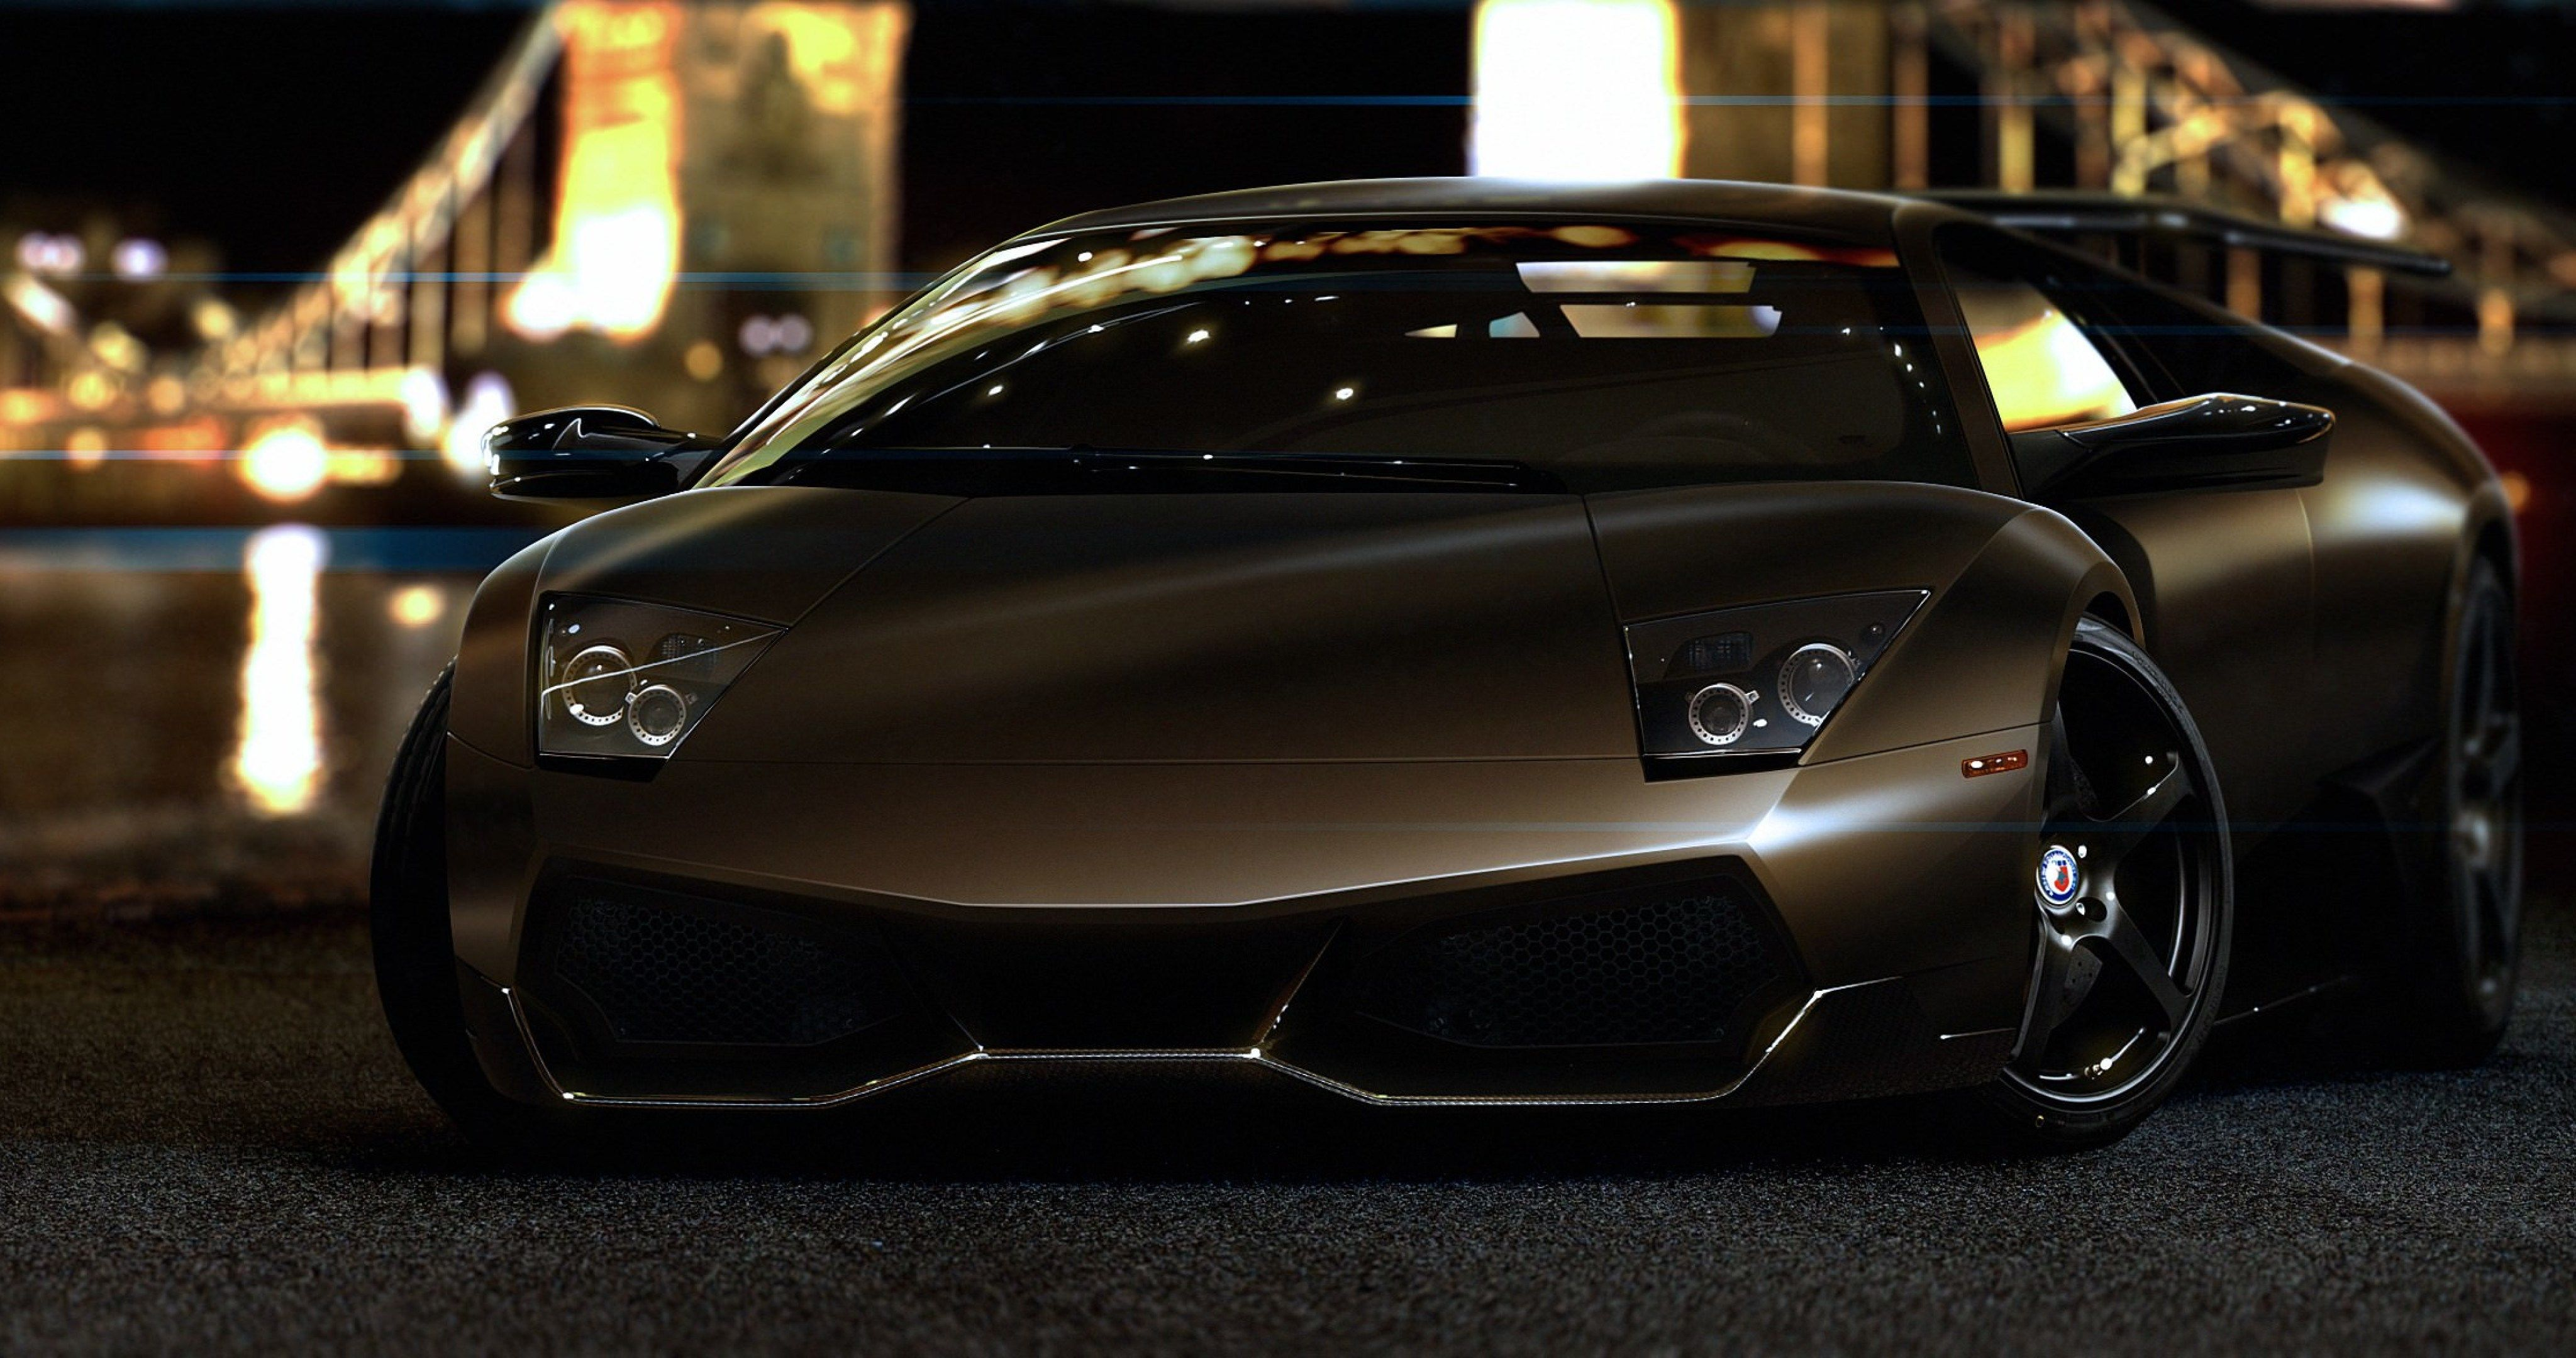 Ordinaire Lamborghini Murcielago Lp670 4 4k Ultra Hd Wallpaper